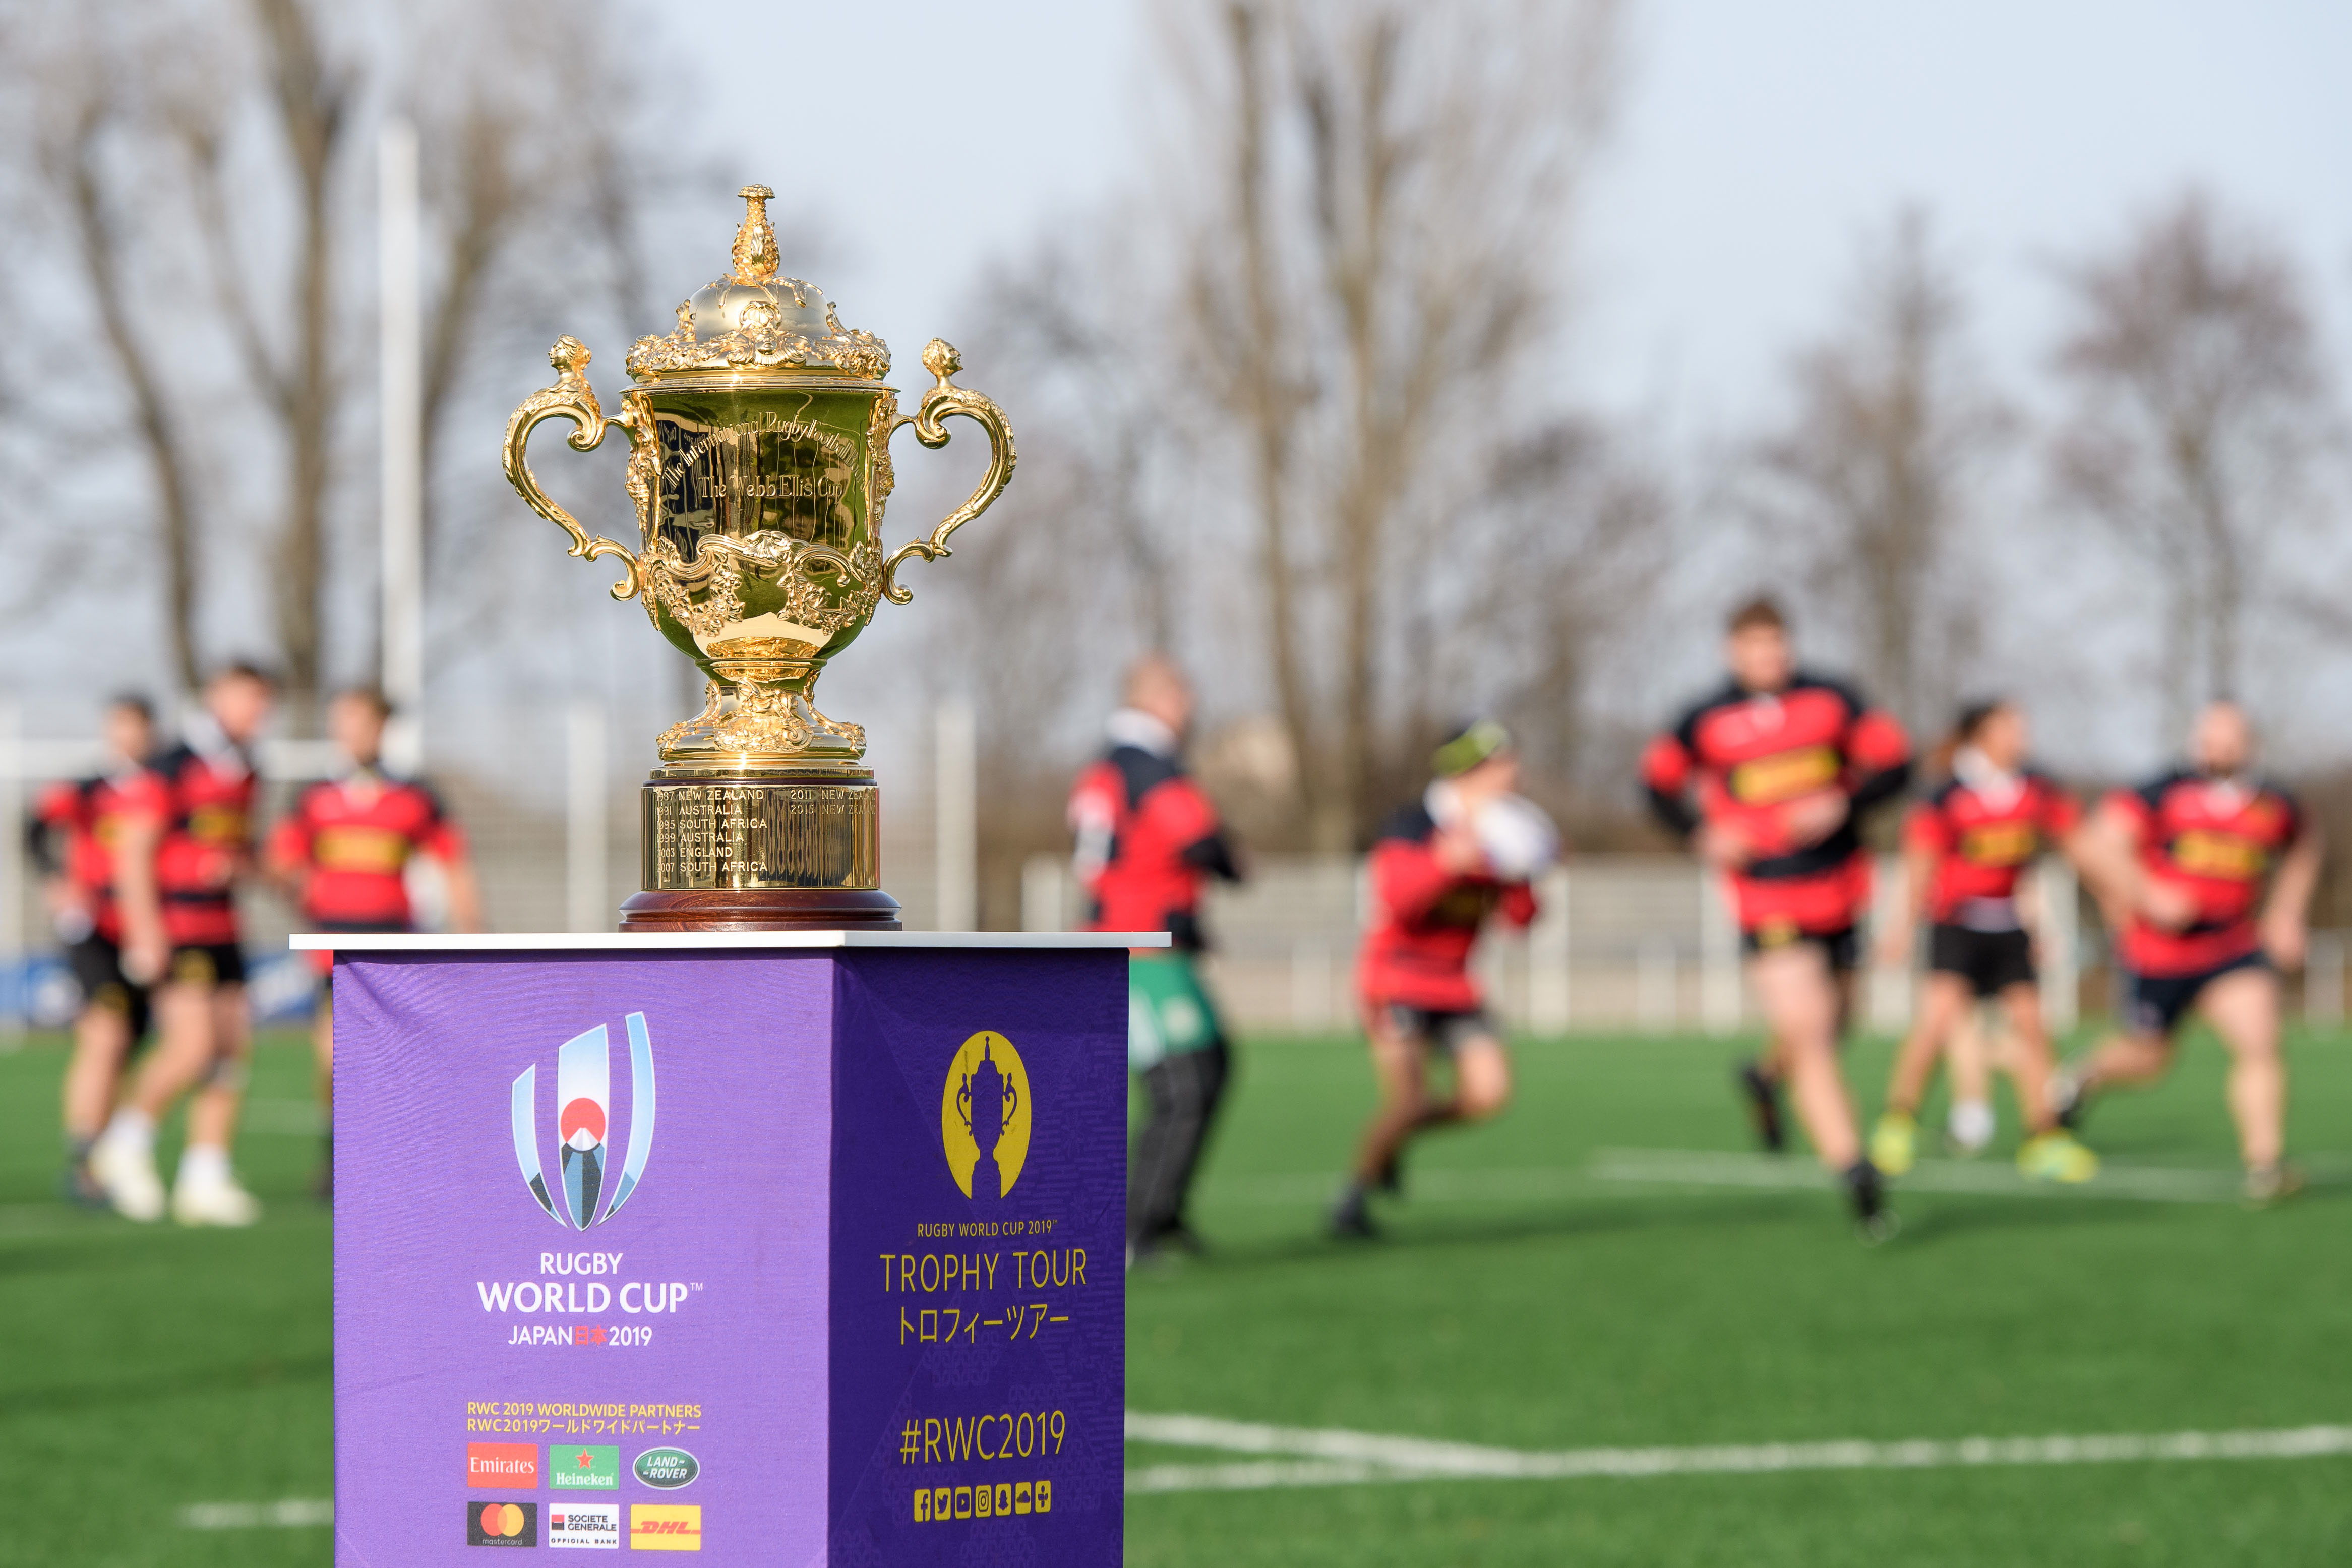 German National Team Welcome The Webb Ellis Cup To Heidelberg As The Rugby World Cup 2019 Trophy Tour Kicks Off In Germany Rugby World Cup Rugbyworldcup Com